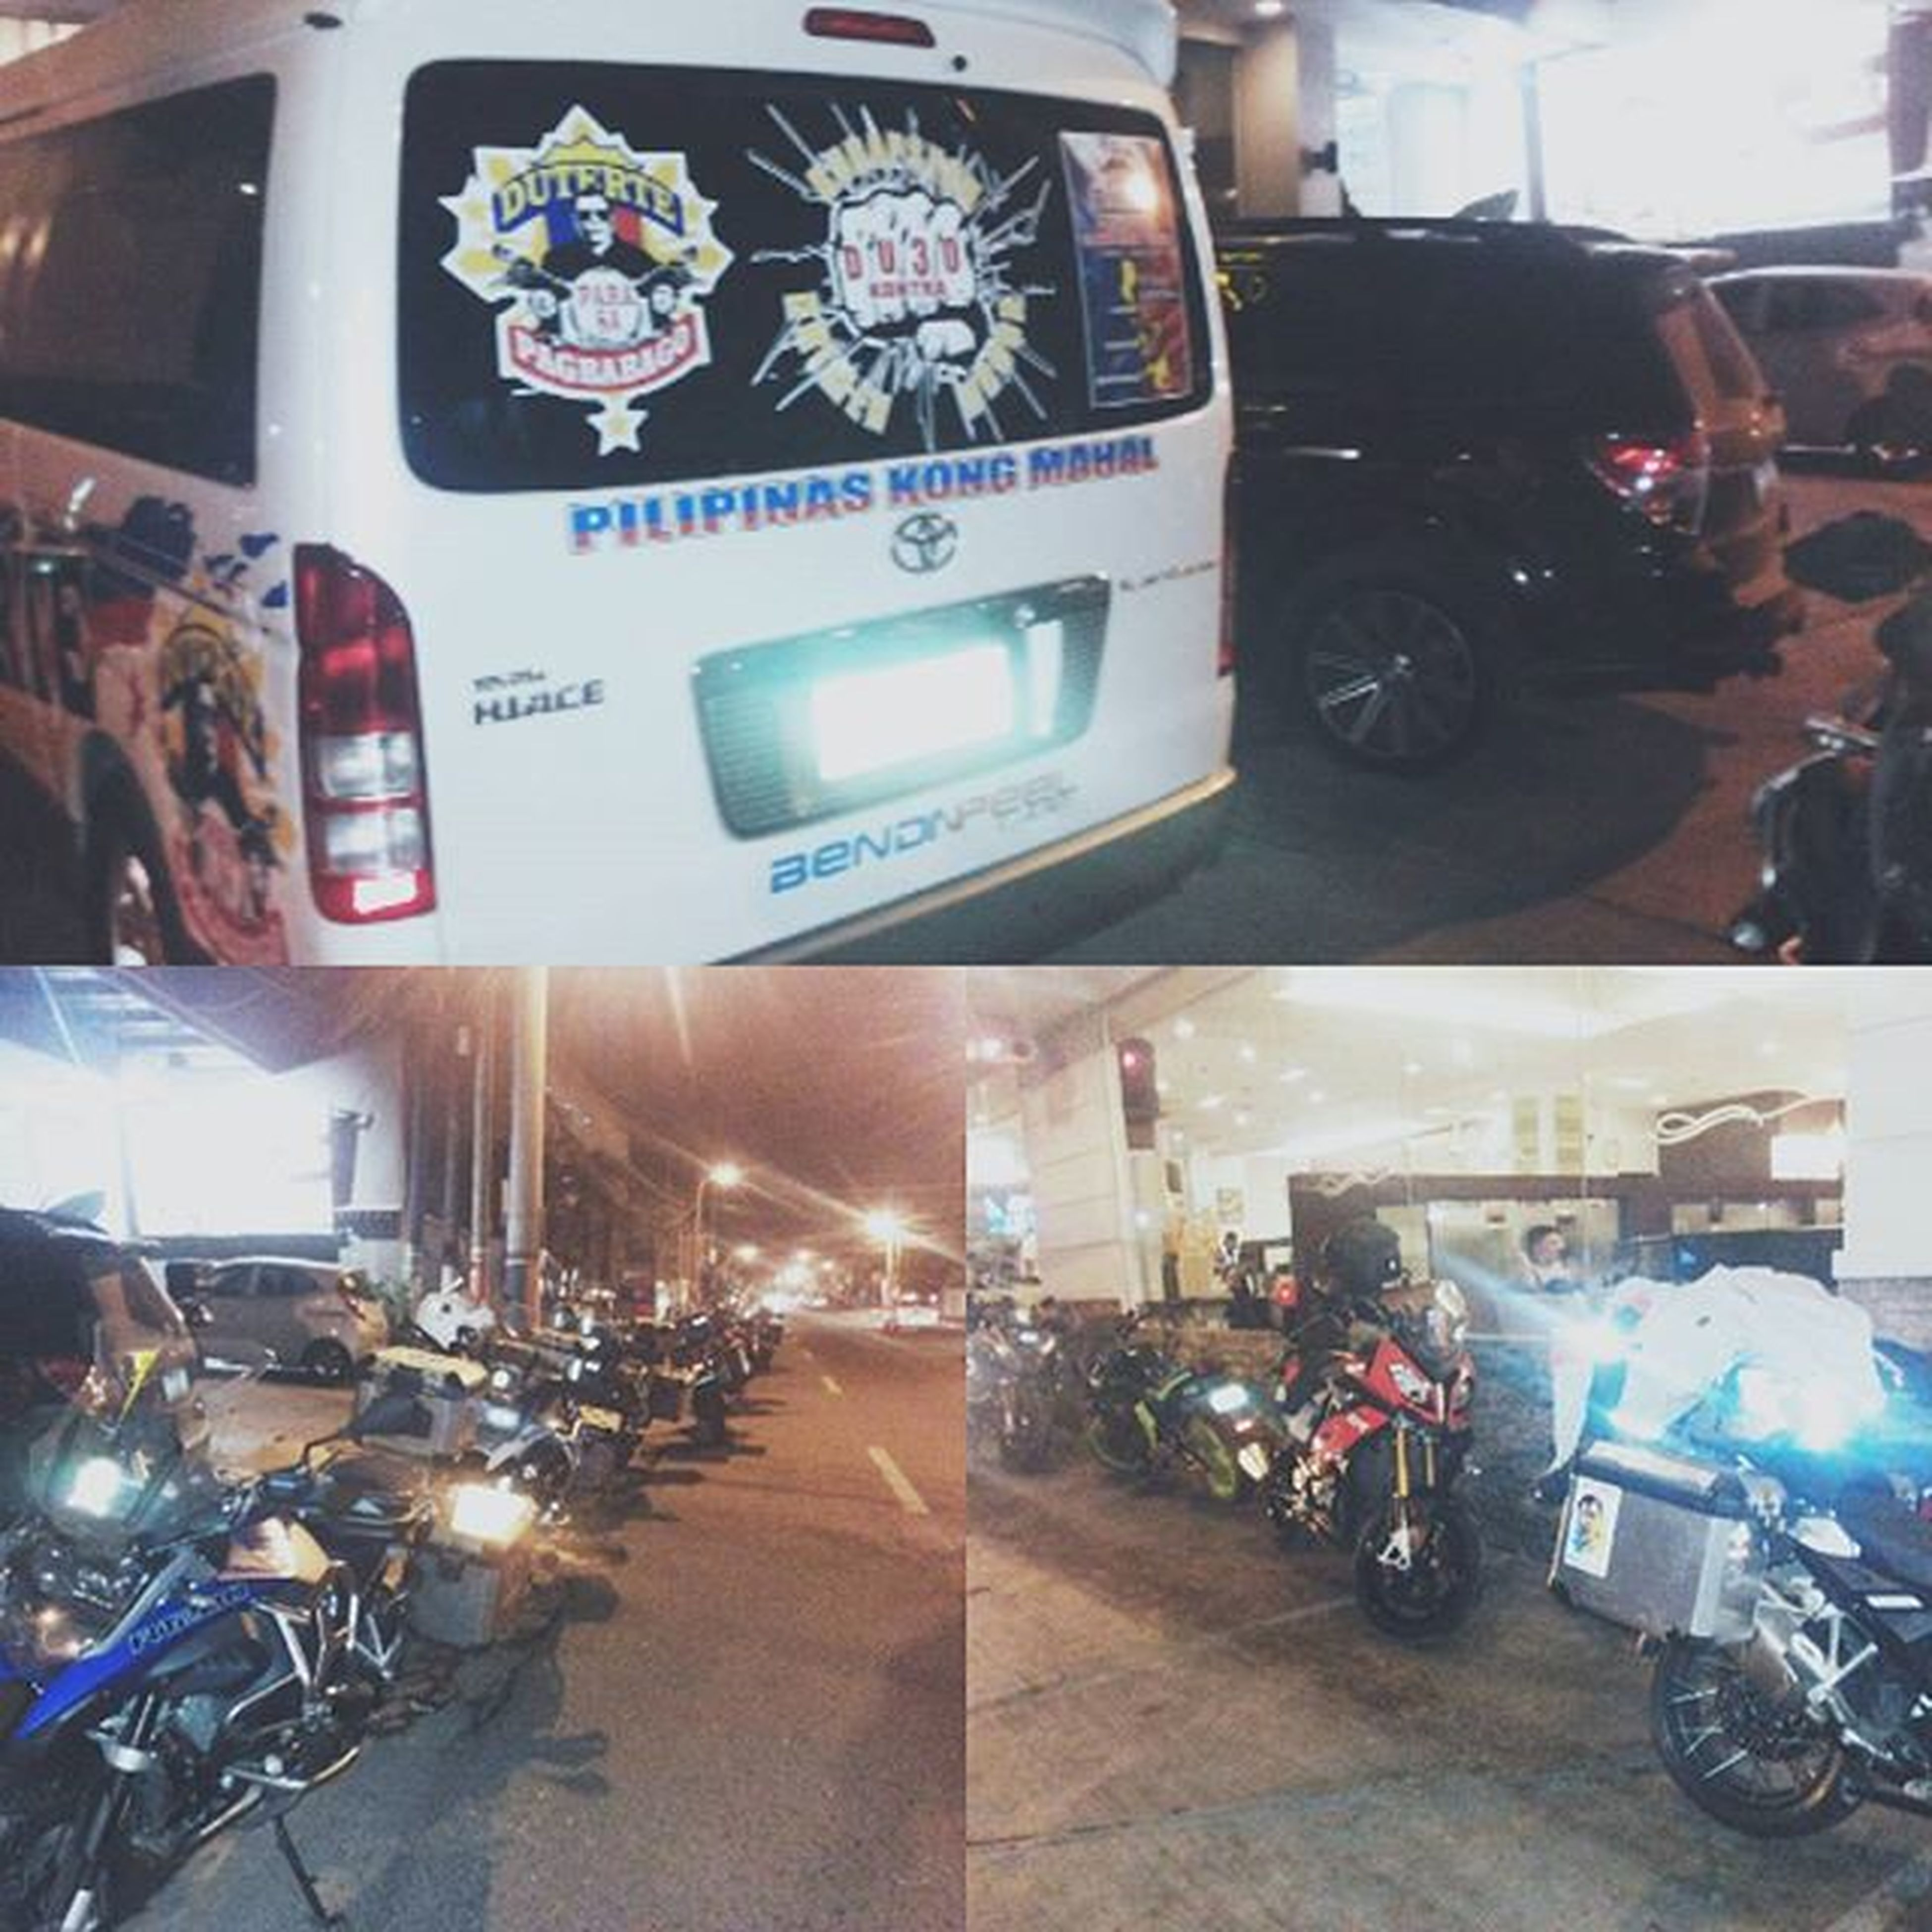 And off they go! Off to Toledo City Earlymorninghustle Duterte2016 Parasapagbabago